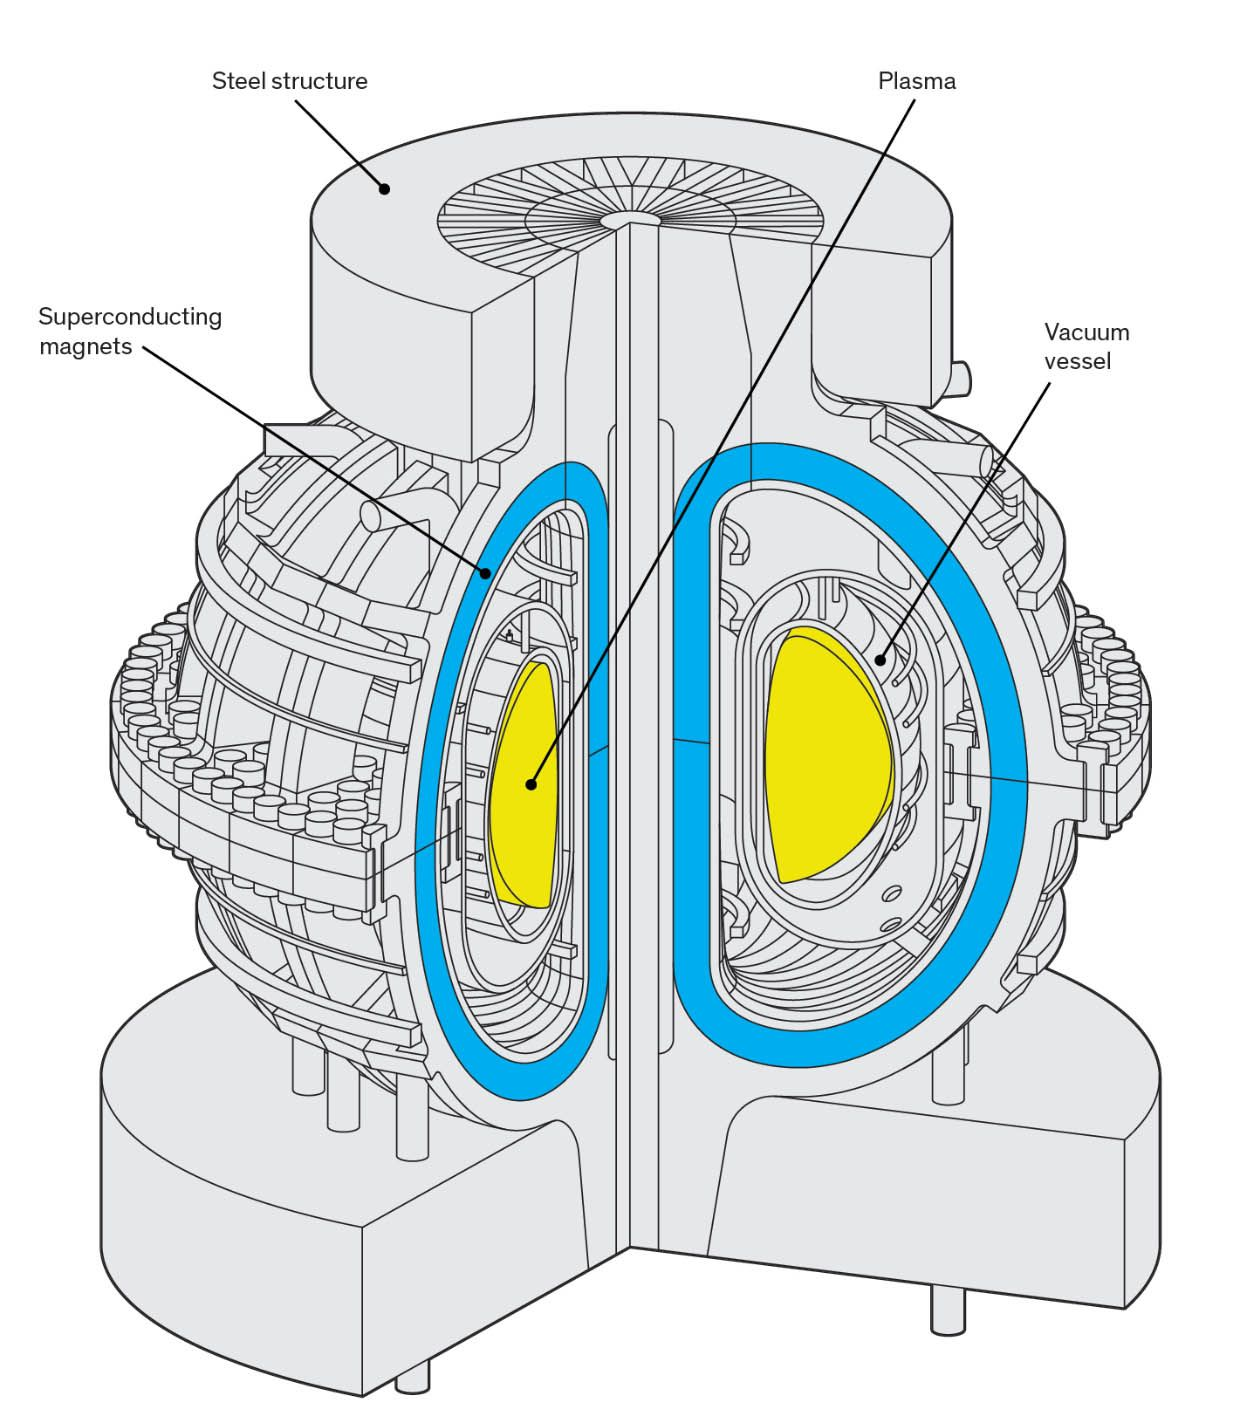 Illustration showing powerful electromagnetic fields confine and heat plasma inside a doughnut-shaped reactor.